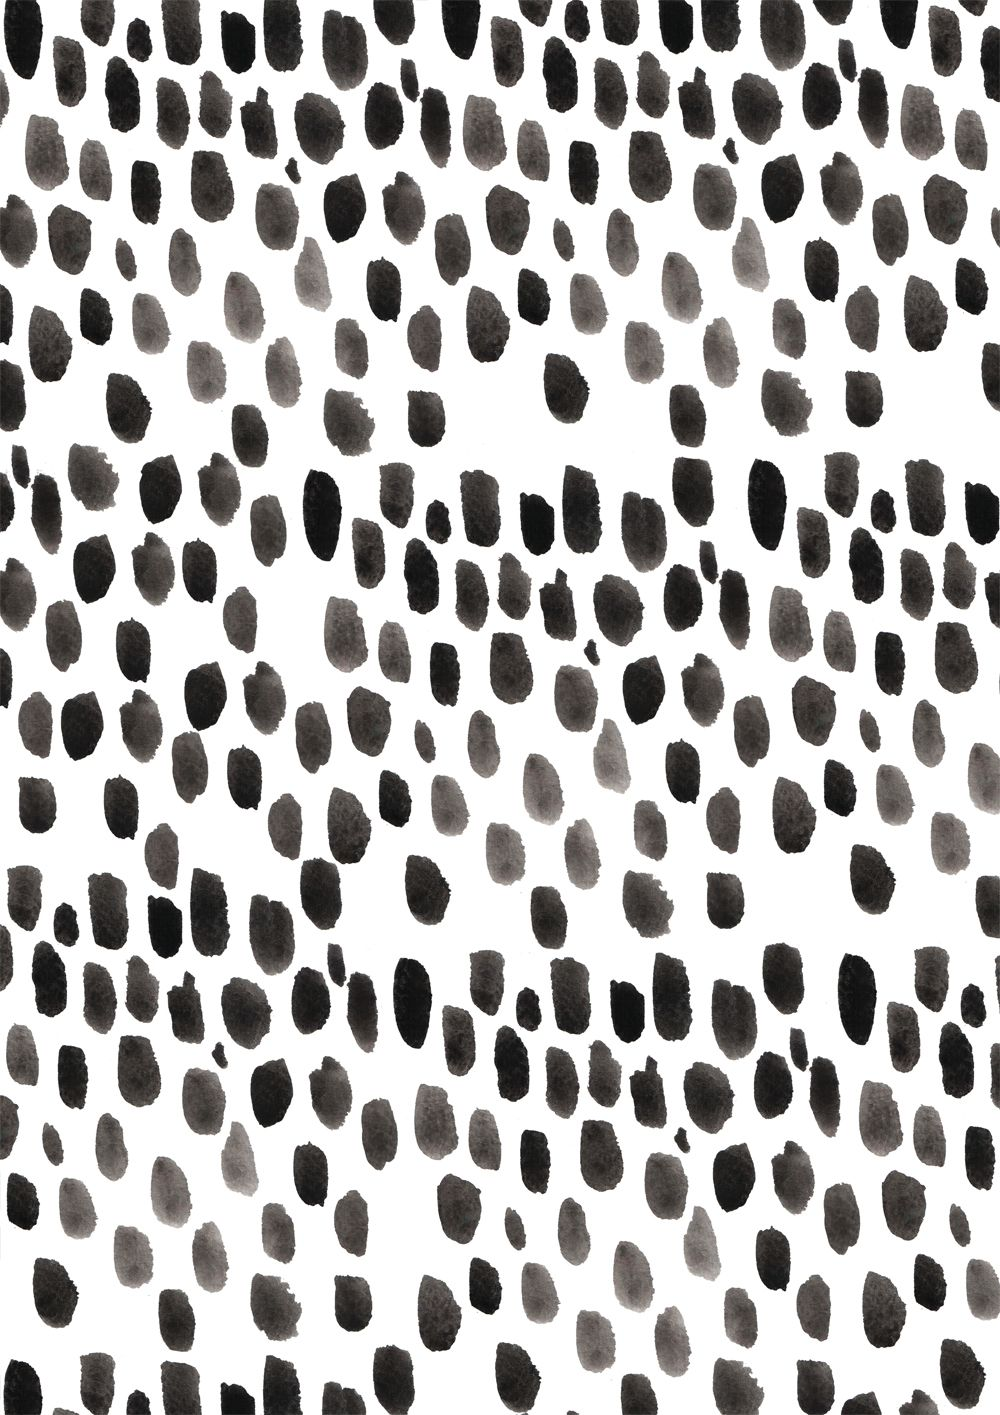 Black Dots Printinstant Download Artminimalist Nursery Etsy Pink Aesthetic Black And White Prints Print Inspiration You can also involve them in the showcase of your design work or use as is as background images. black dots printinstant download